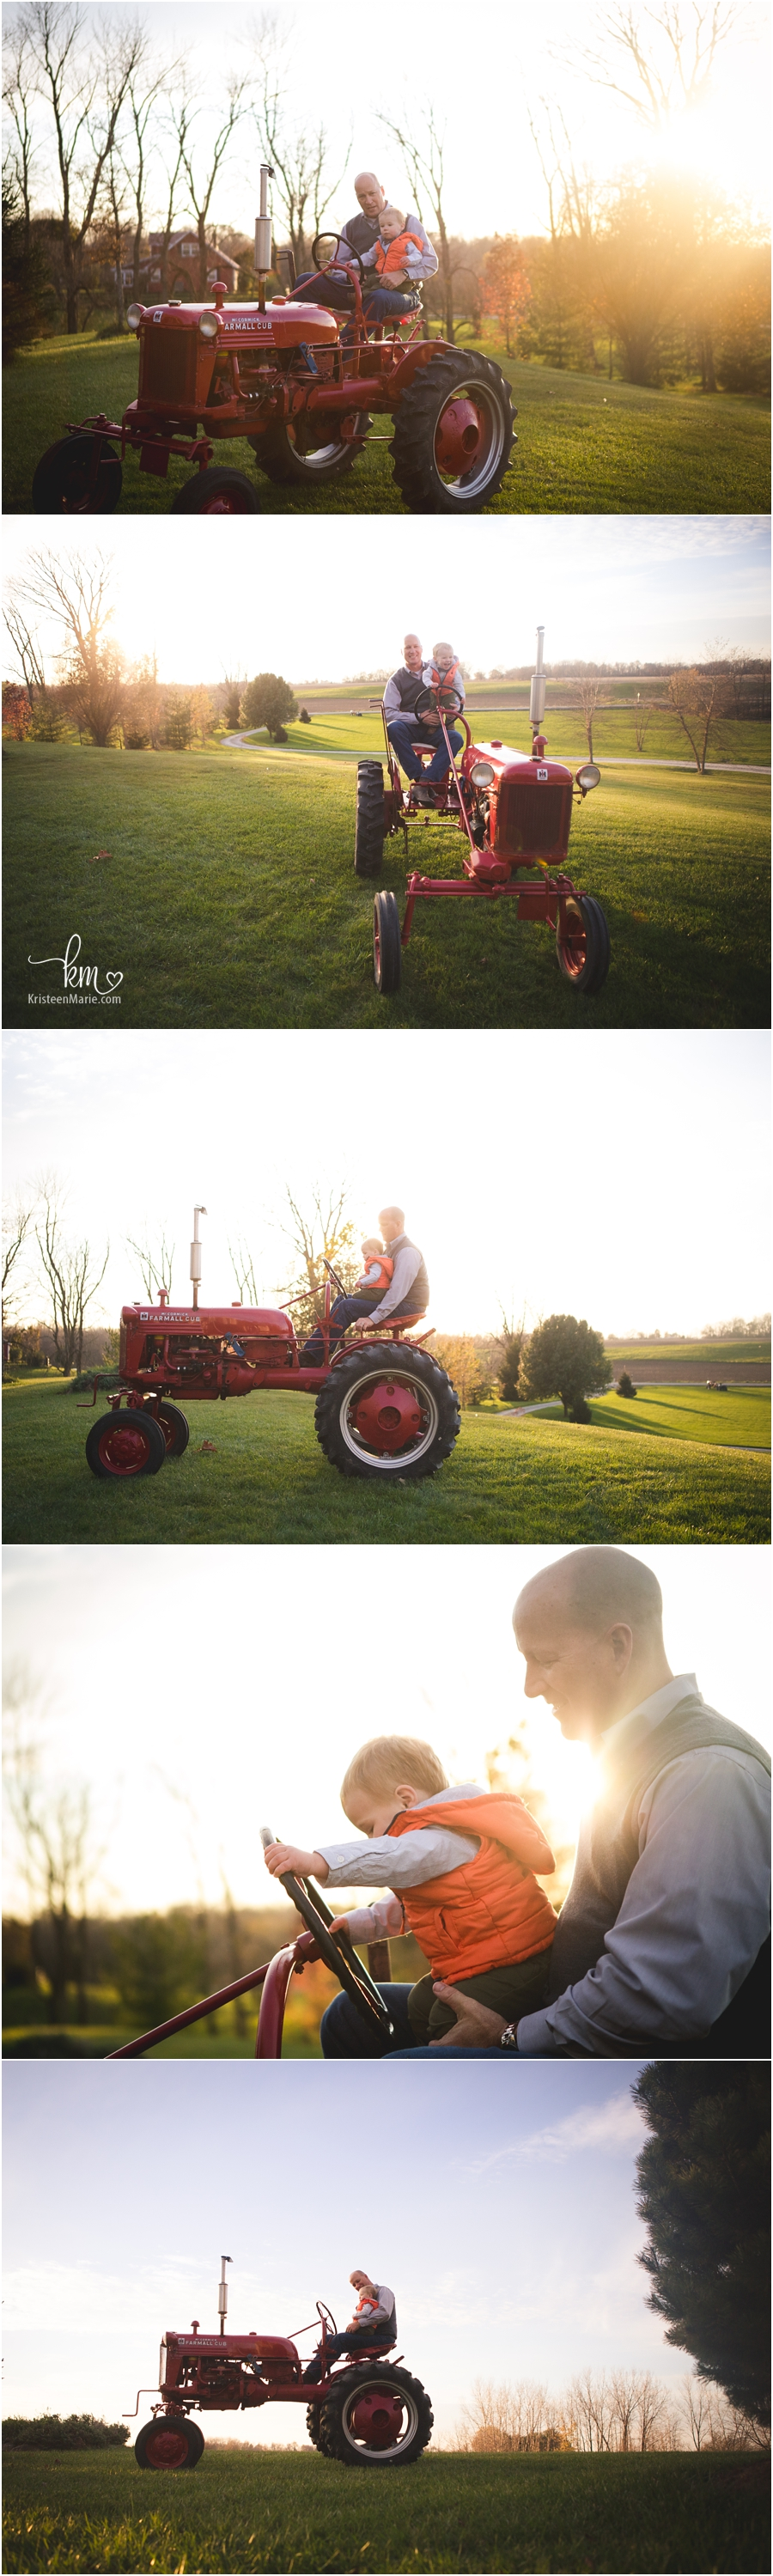 A day on the farm - family photography